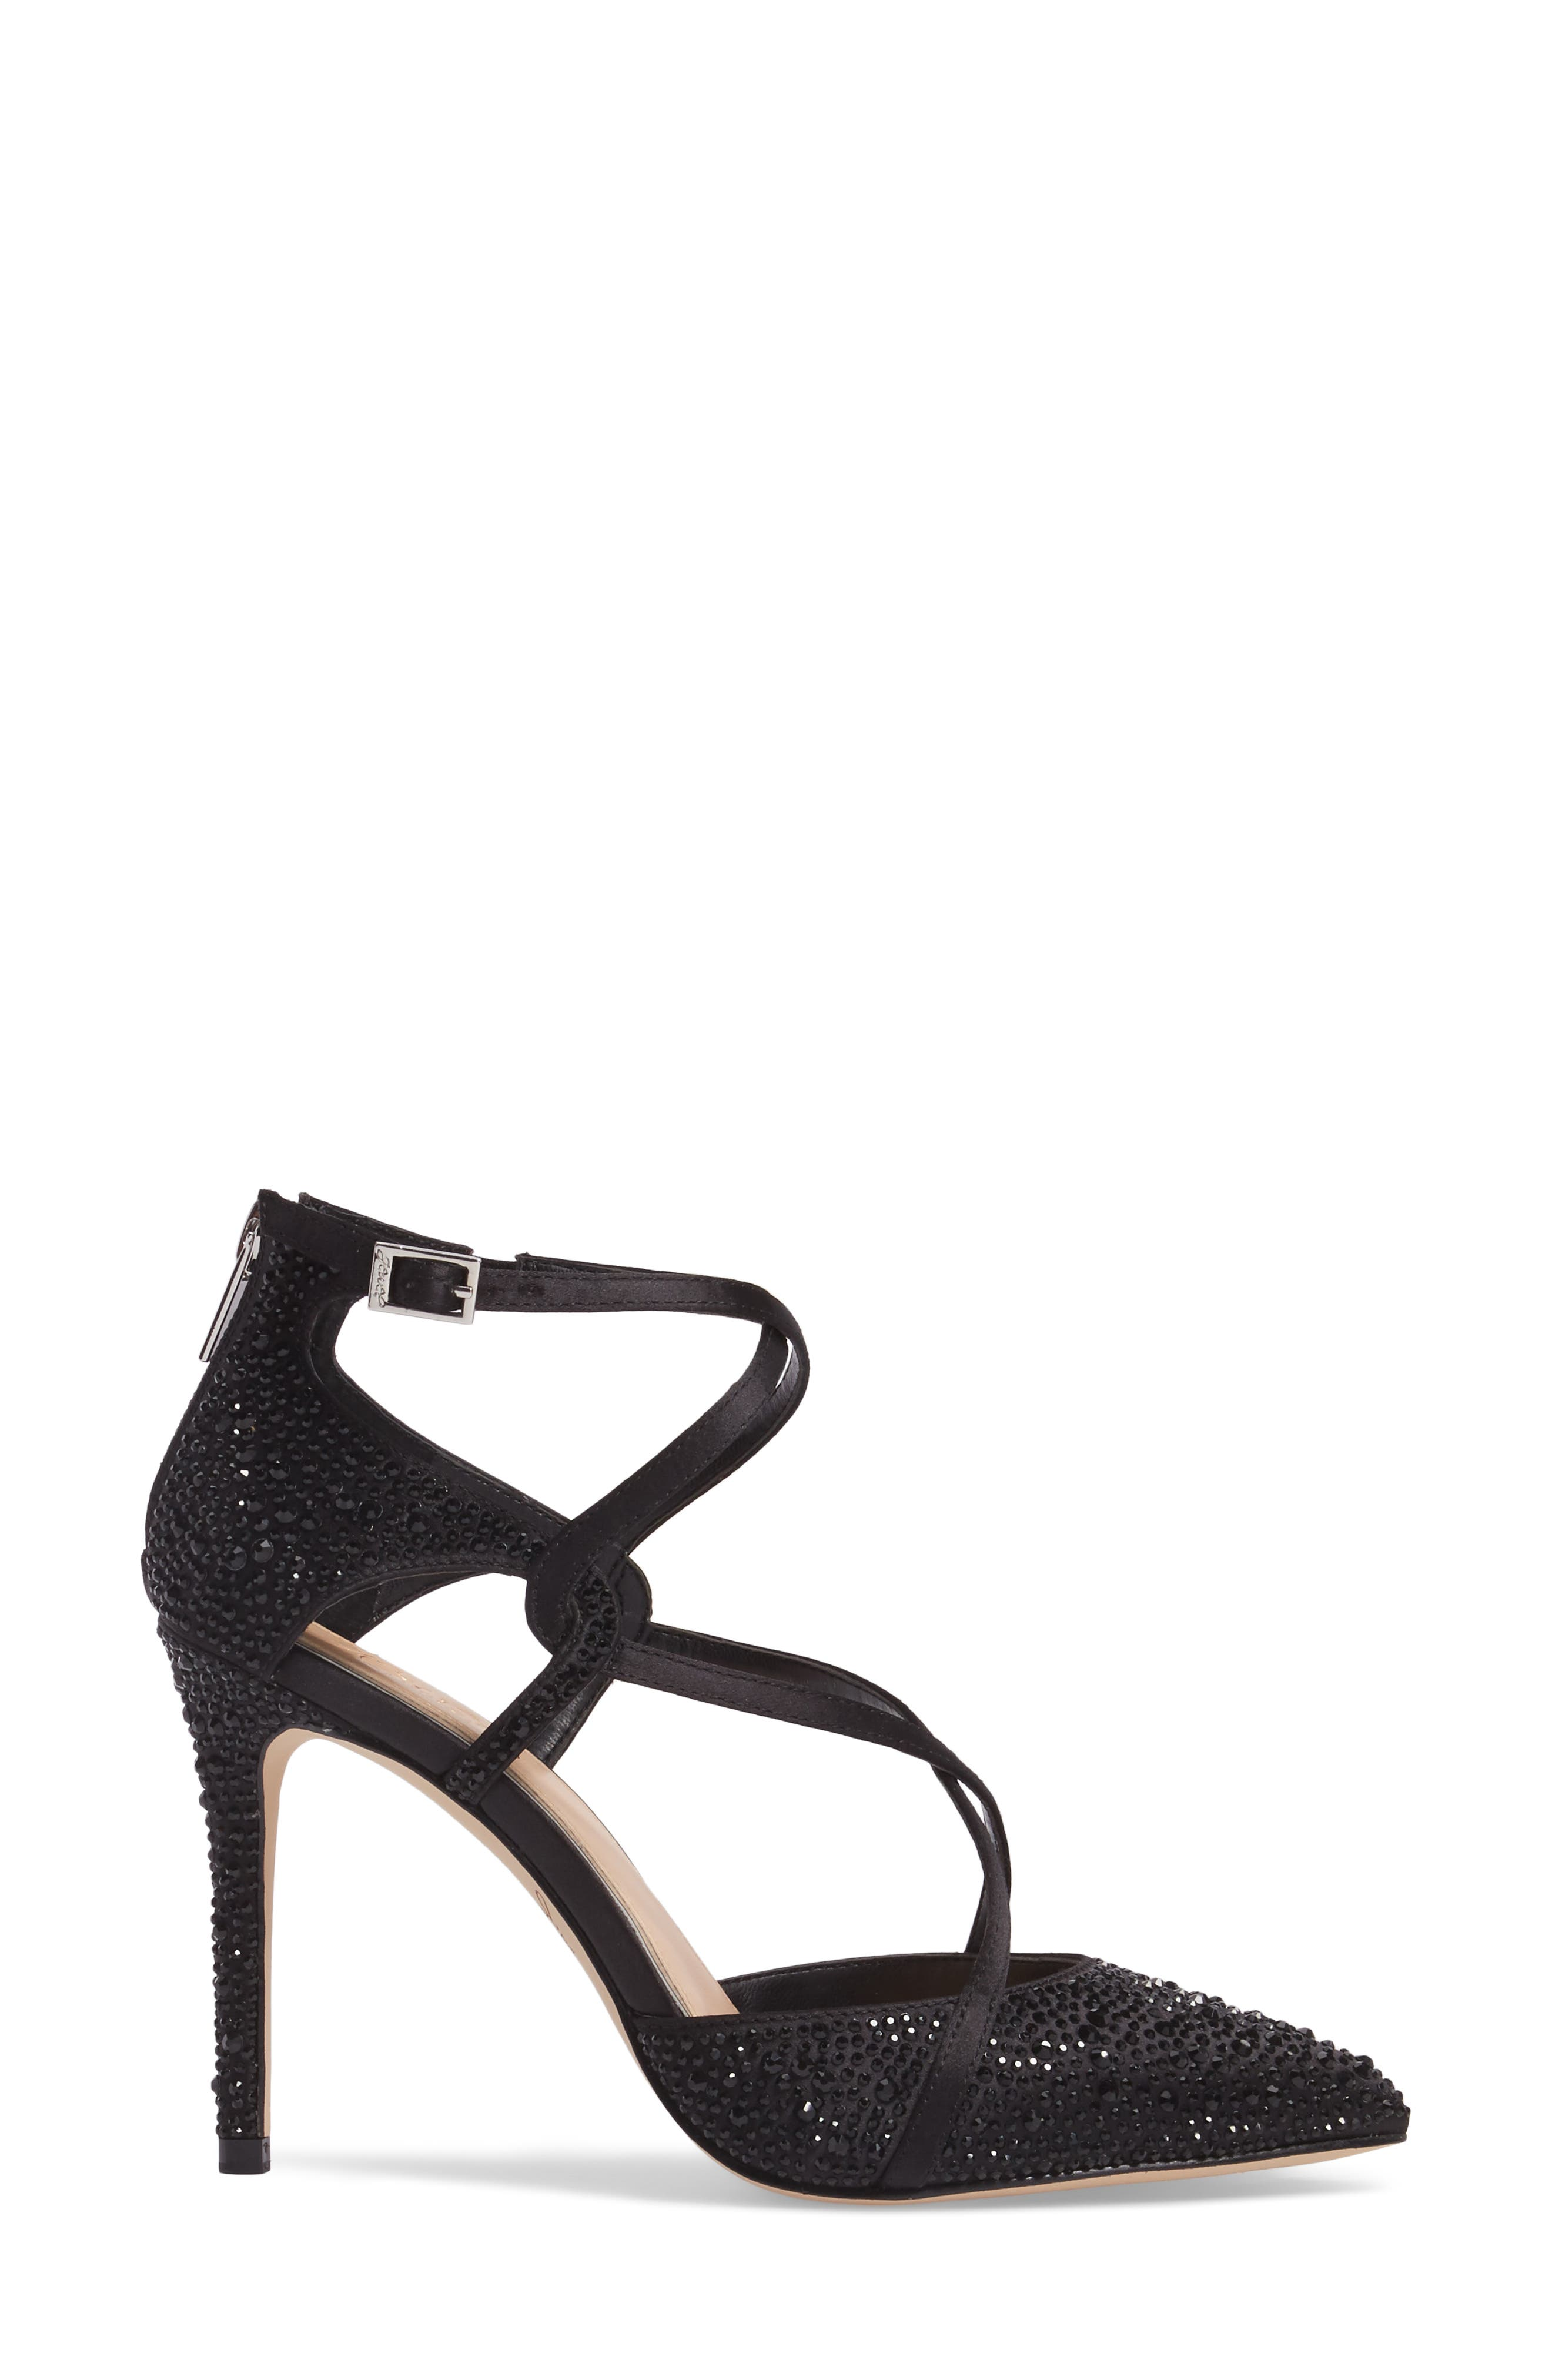 Alivia II Strappy Pump,                             Alternate thumbnail 3, color,                             004